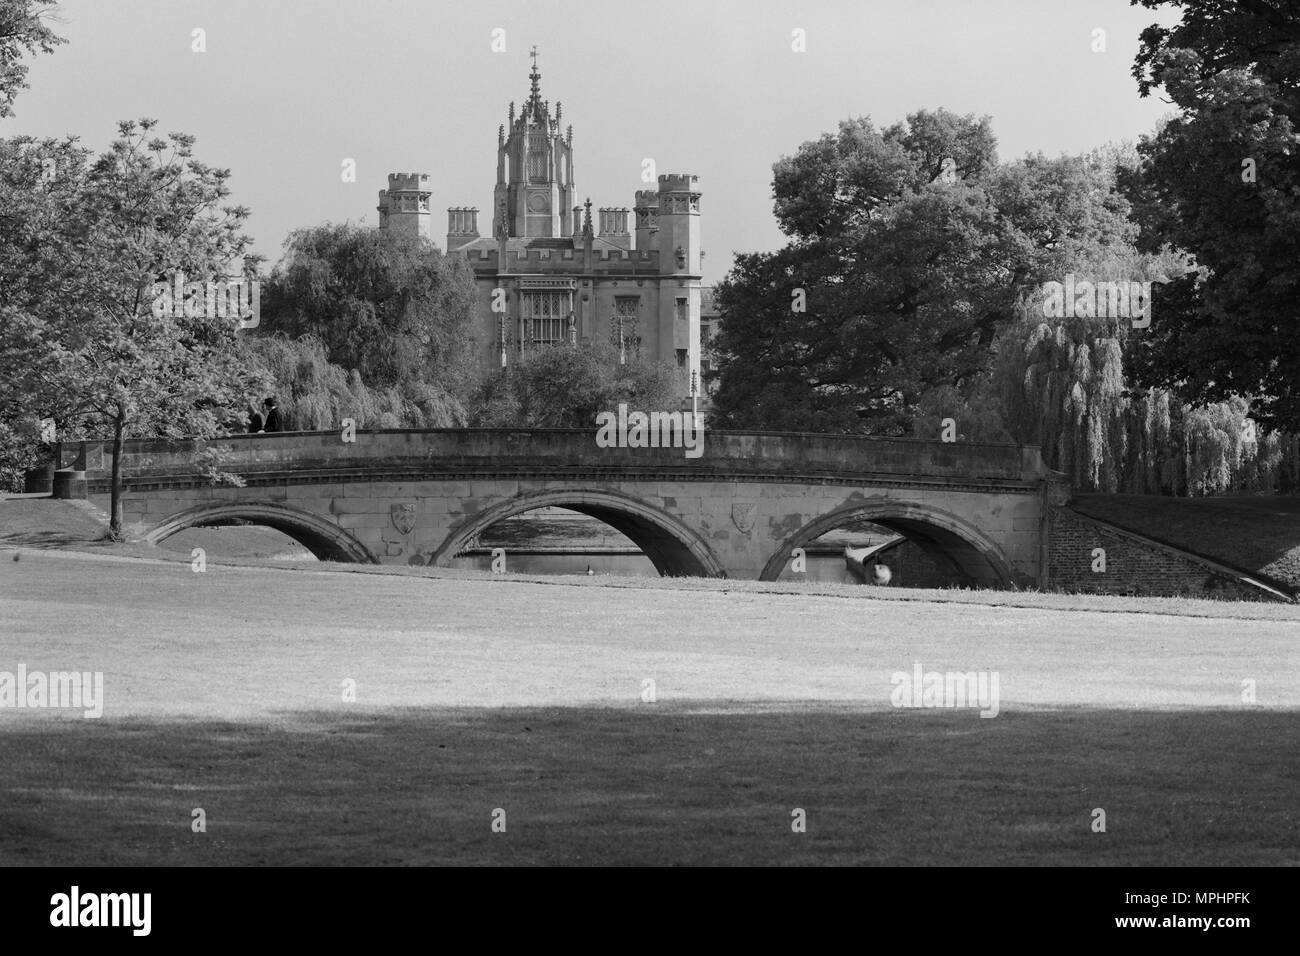 Trinity Bridge and St John's College Cambridge - Stock Image